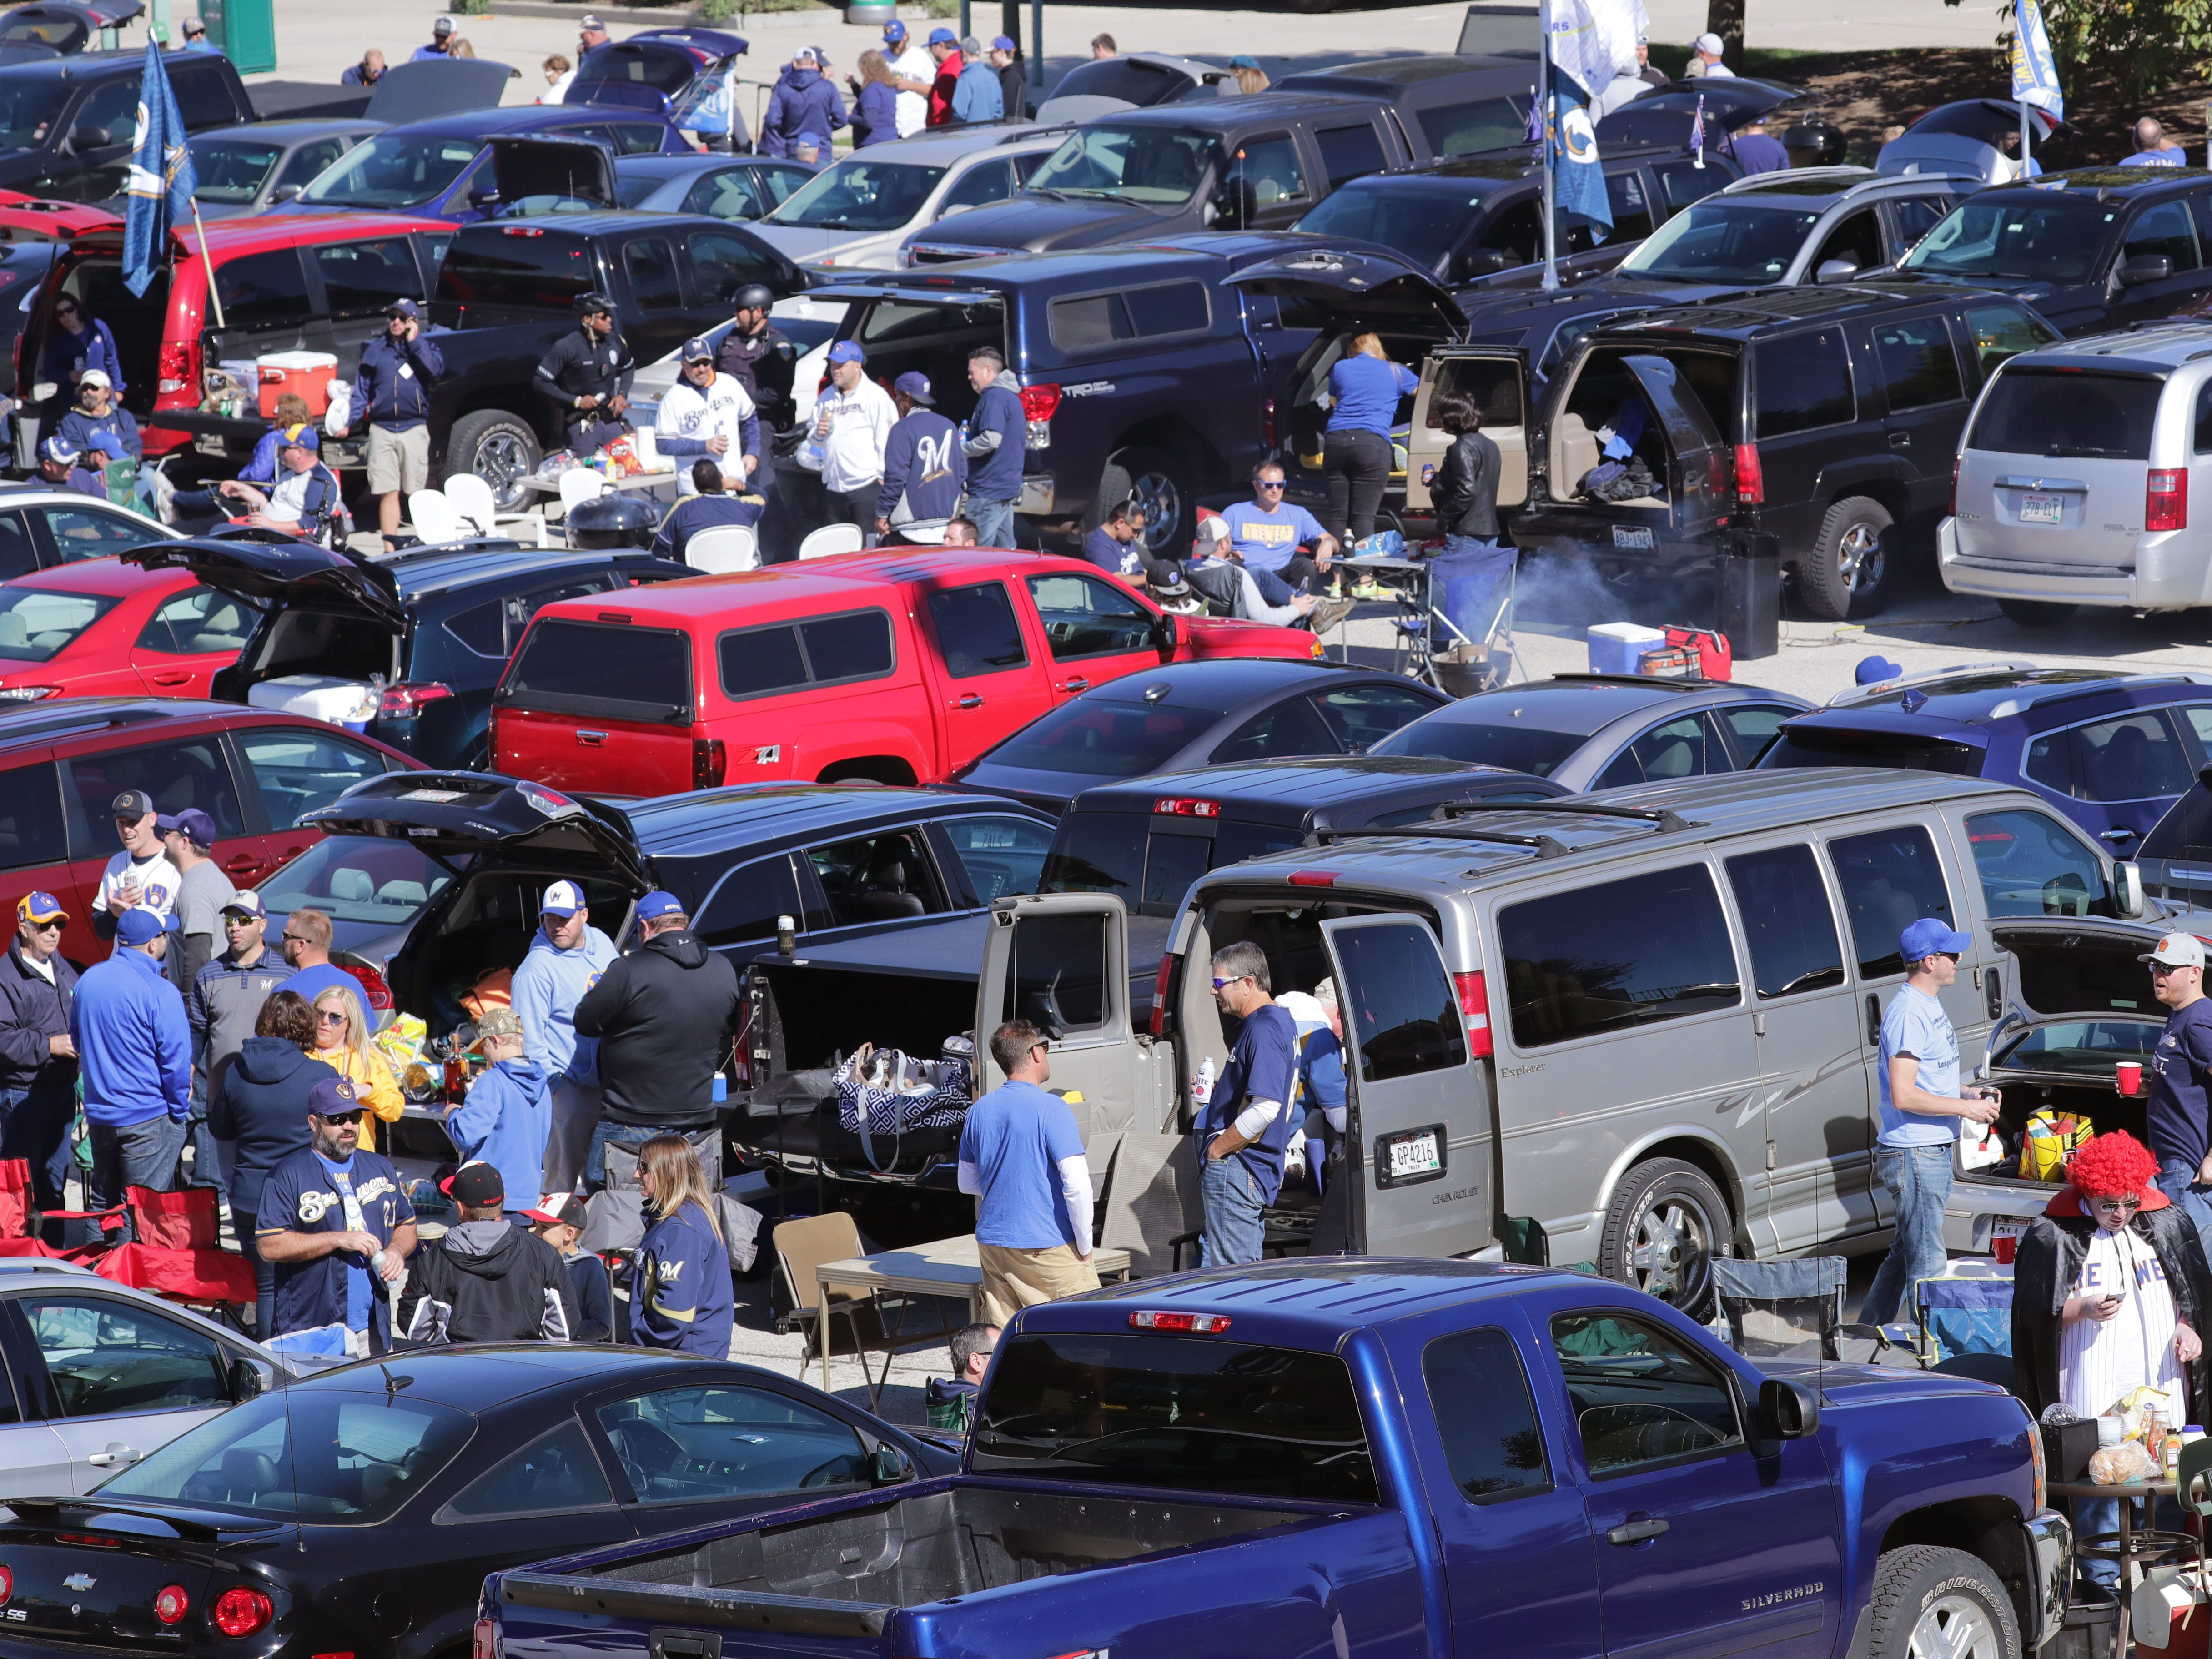 Fans tailgate before the Milwaukee Brewers National League Divisional Series game against the Colorado Rockies.